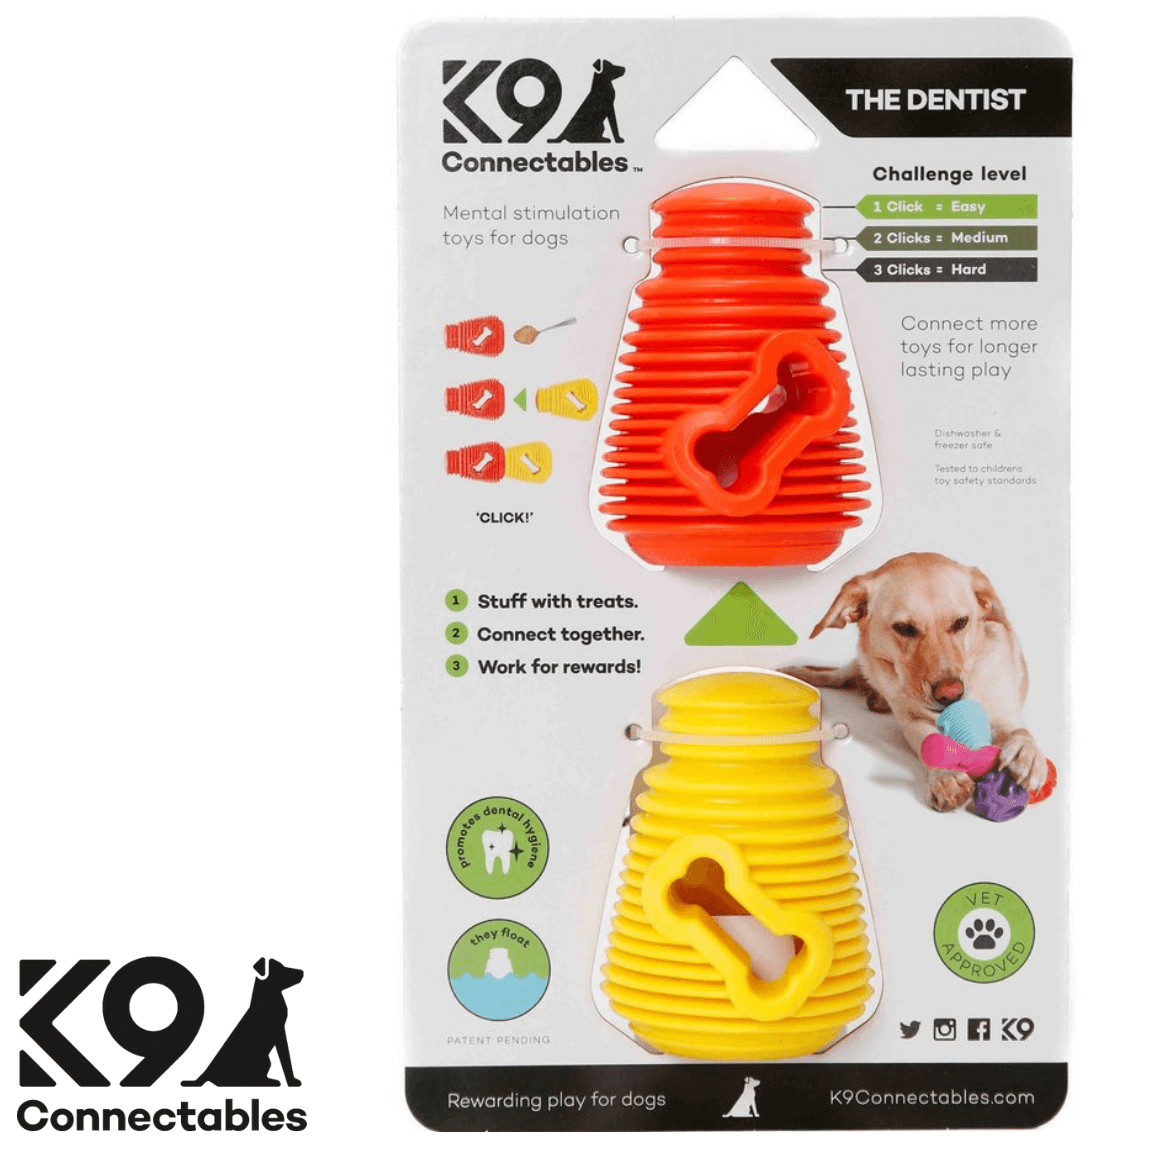 K9 Connectables Australia - The Denist Orange Yellow